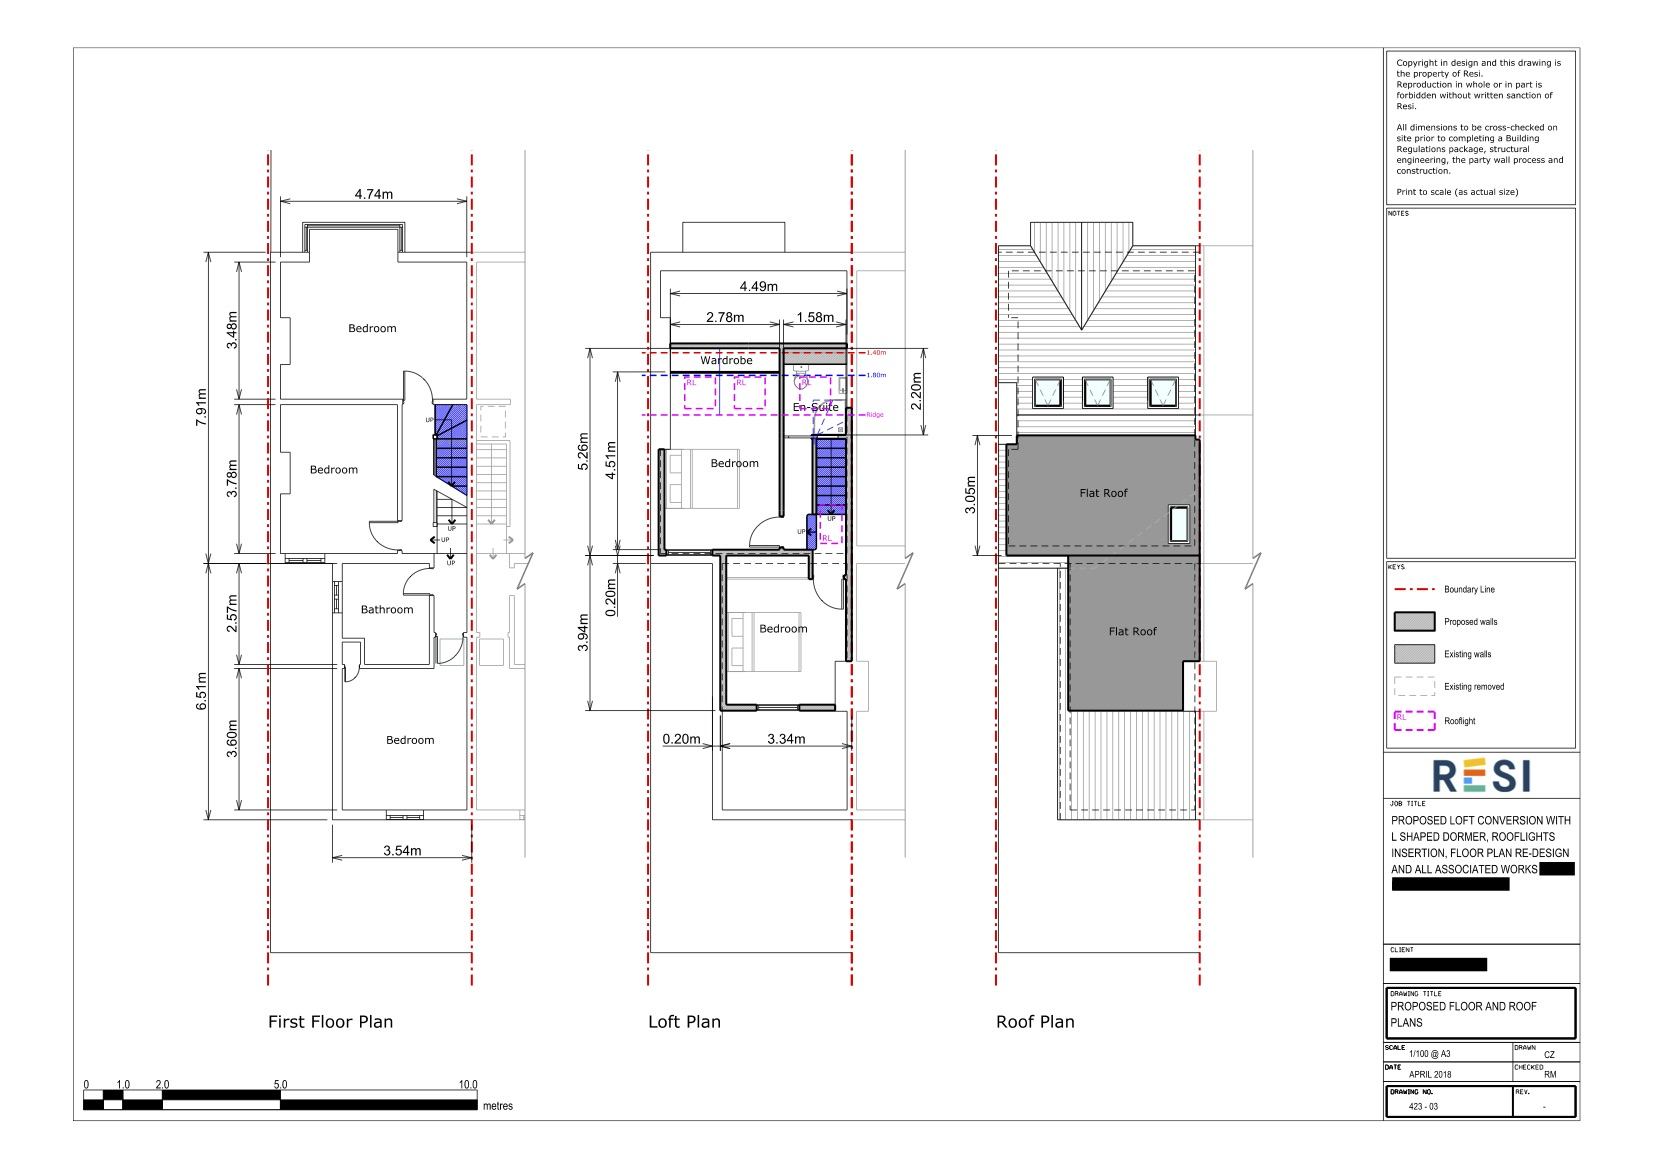 Architectural drawings 34   first floor and loft plans